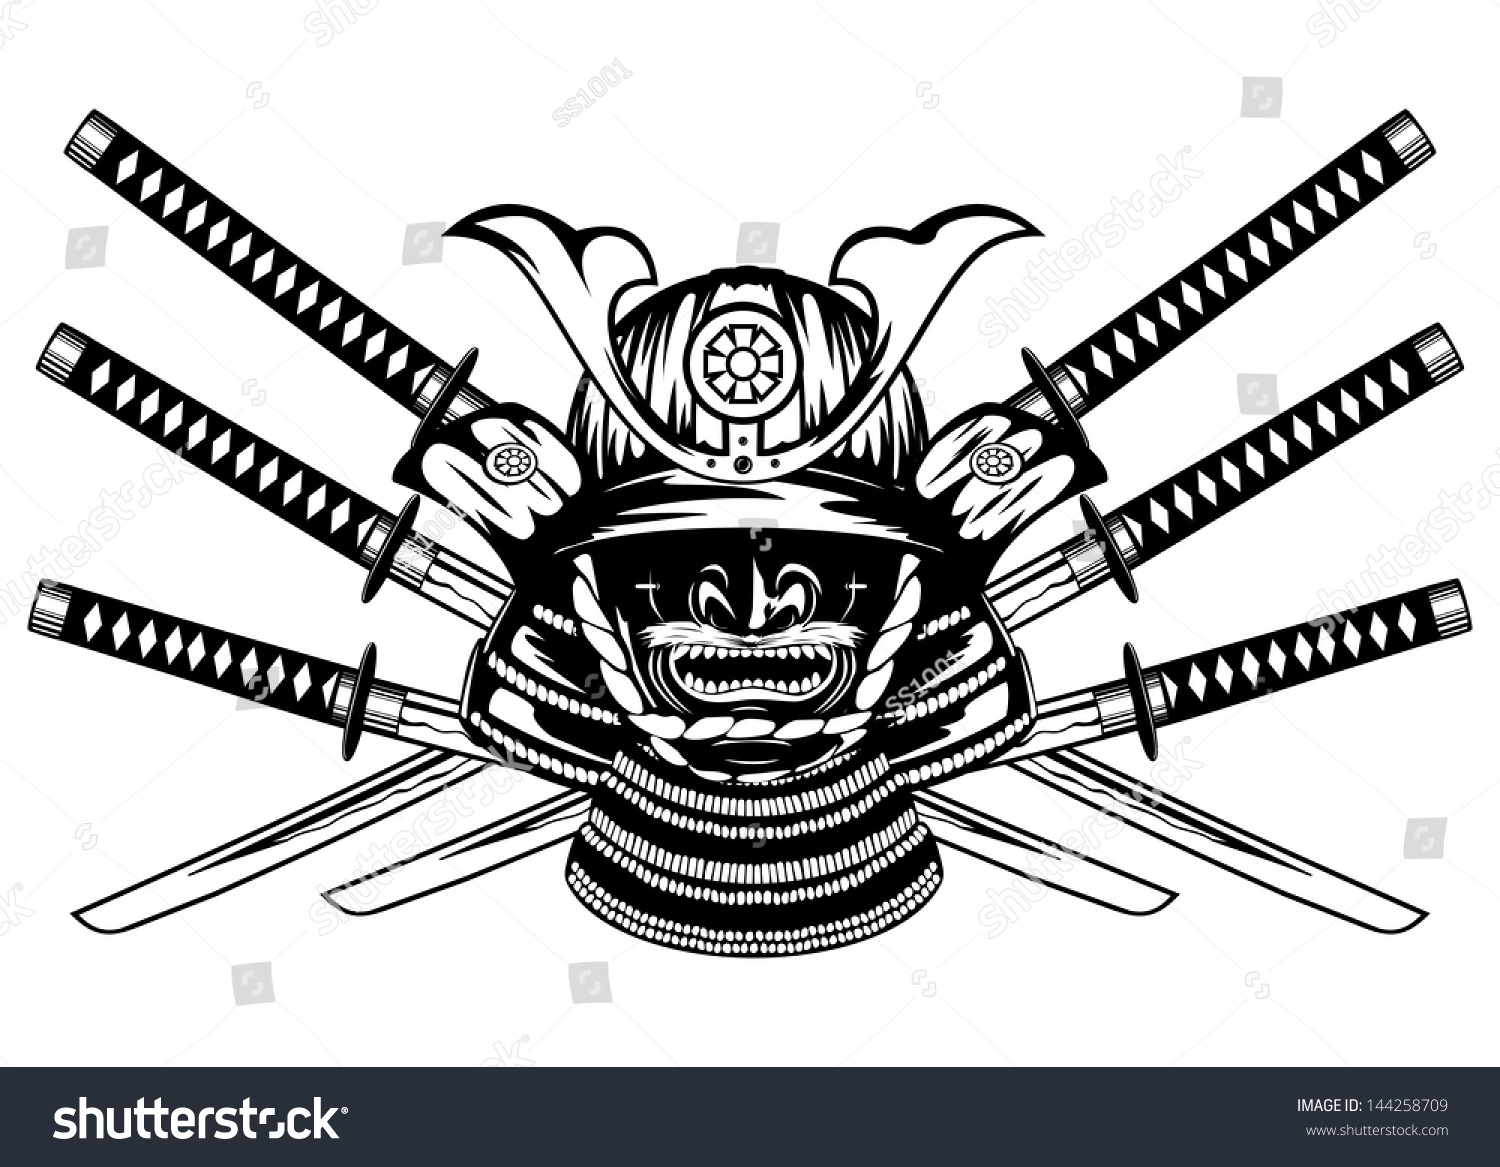 Vector illustration samurai helmet menpo with yodare kake crossed katanas